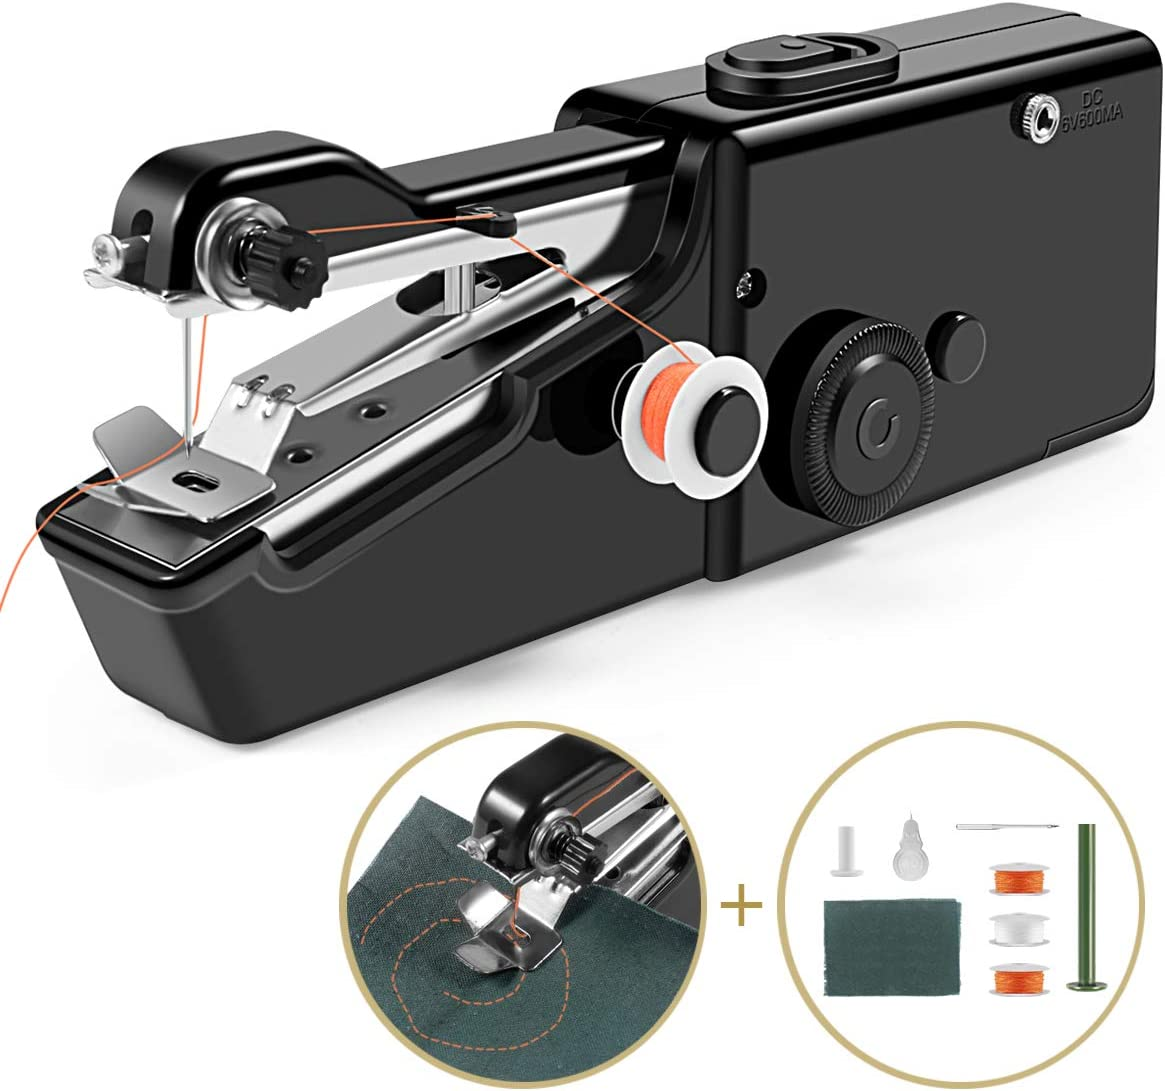 Sewing Machine with the Best Design